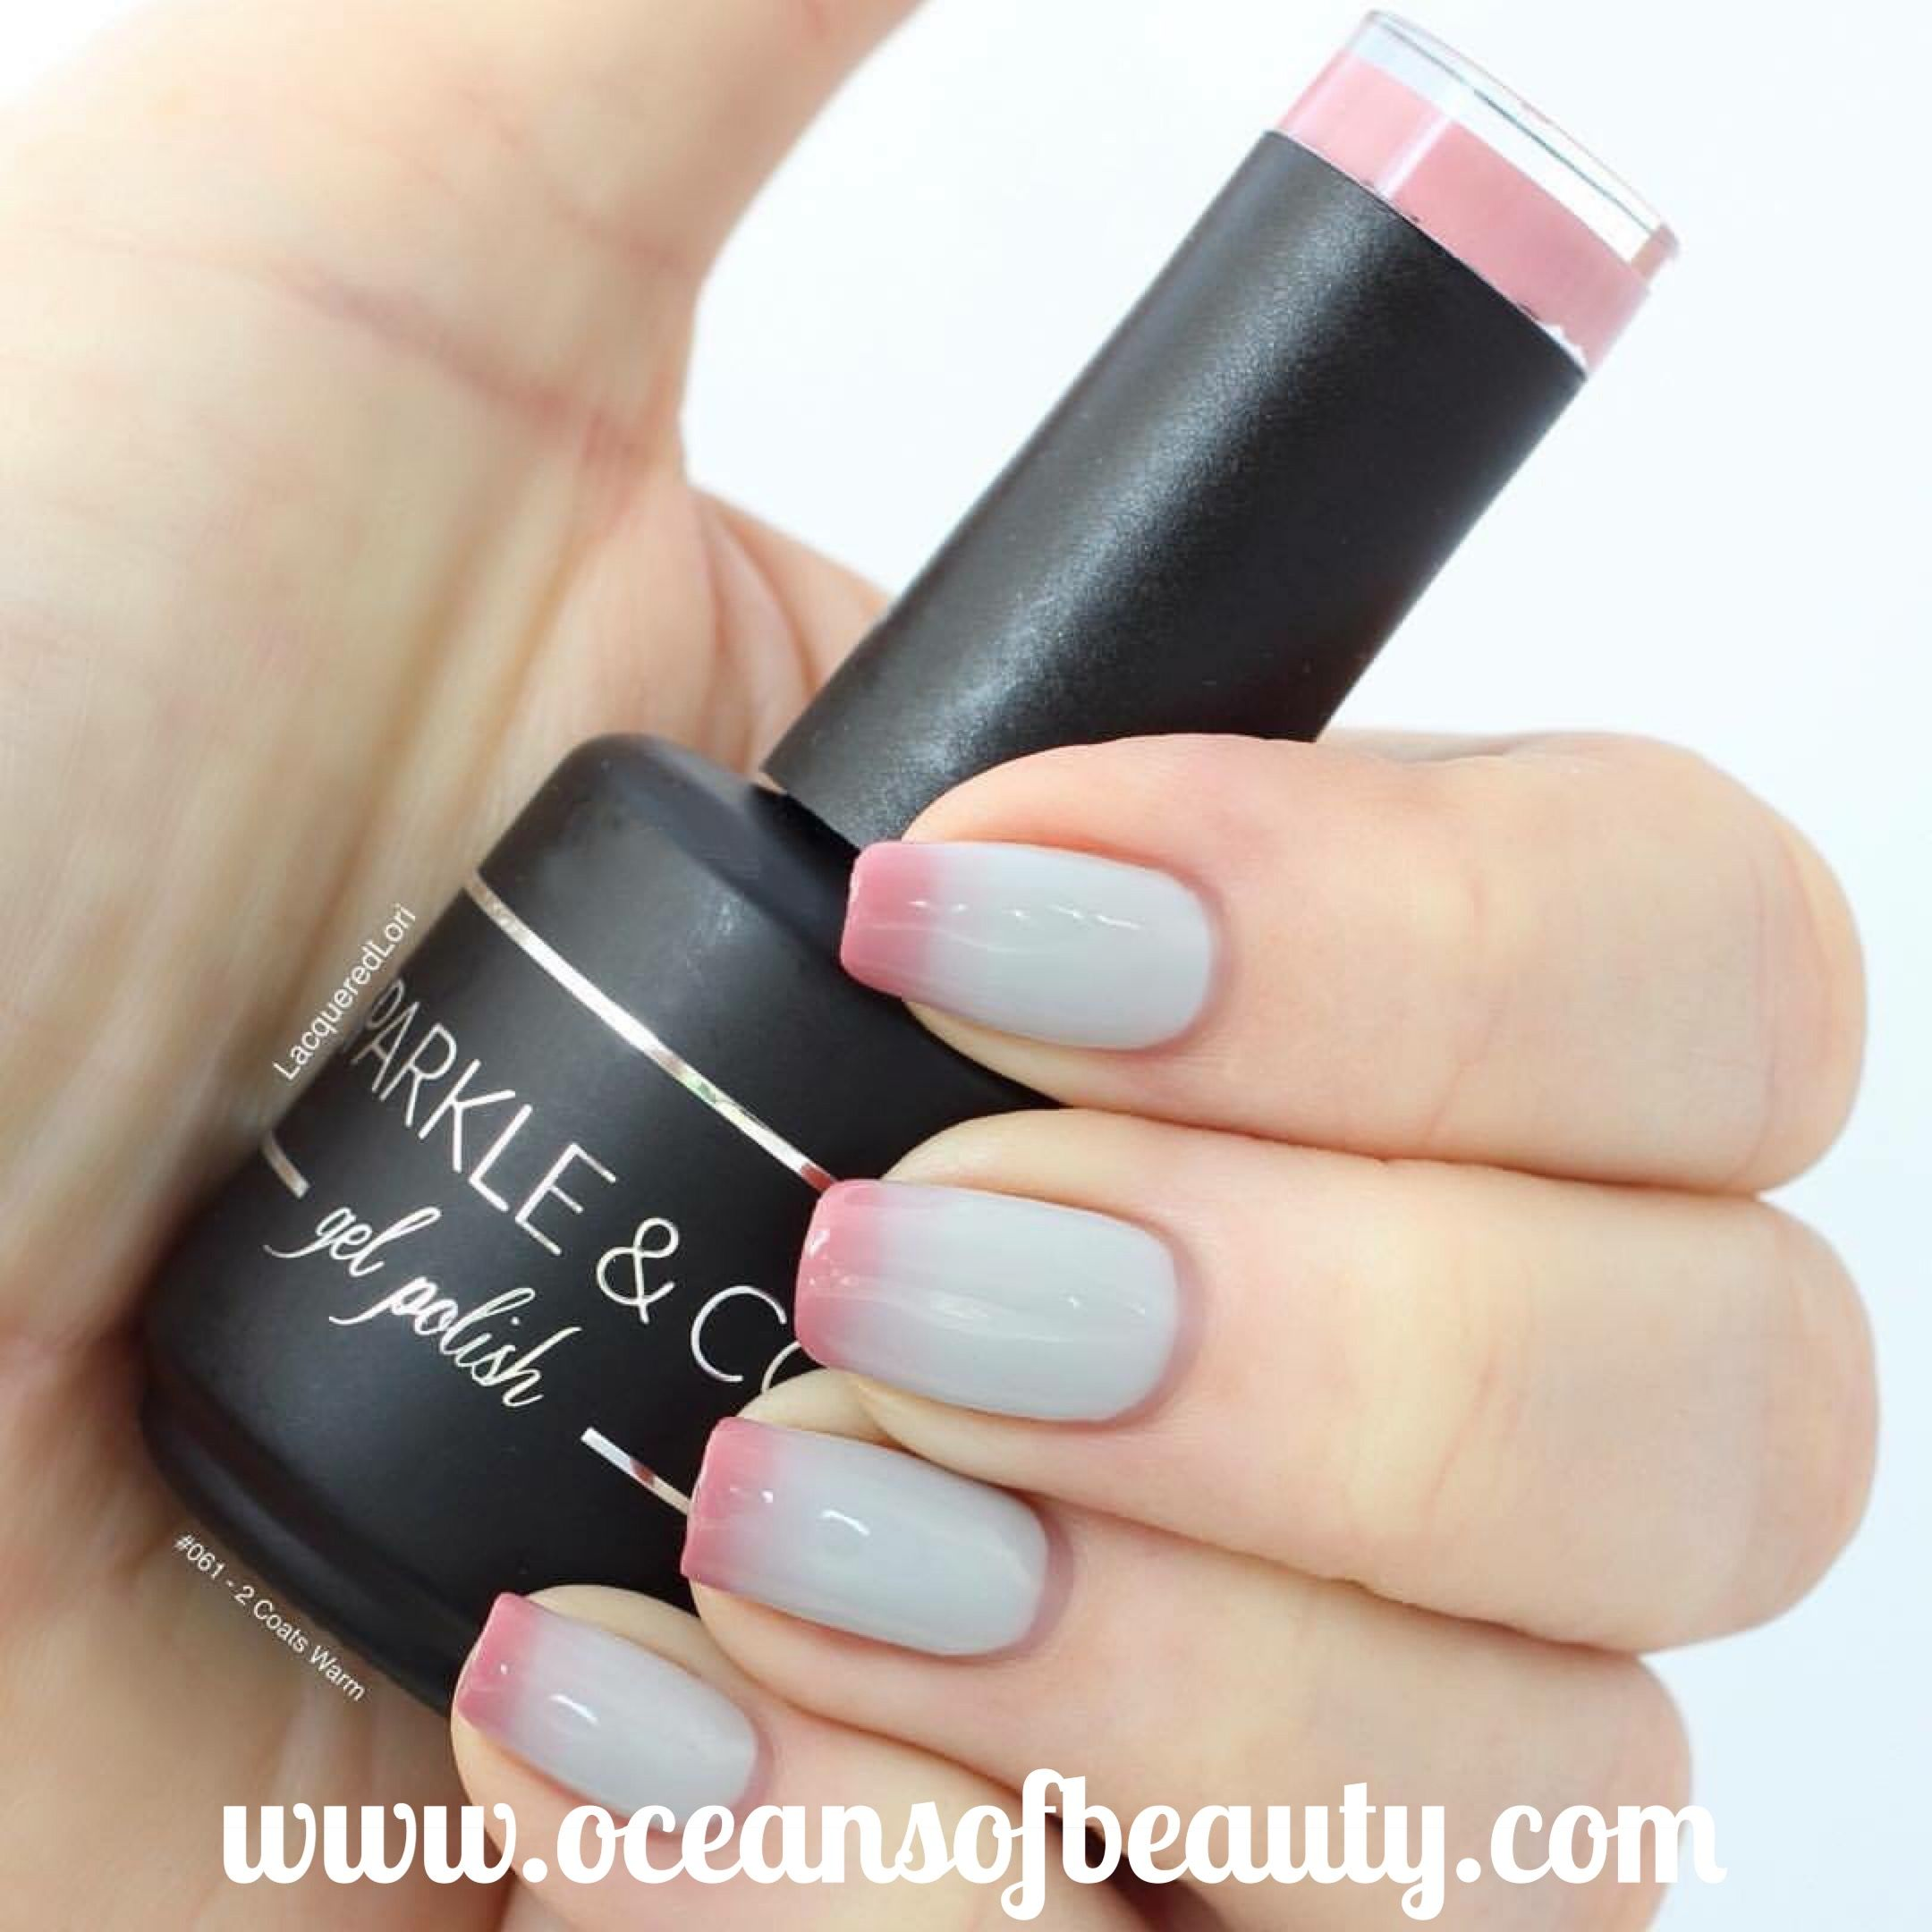 061 Sparkle & Co. Gel Polish. Lasts 2-3 weeks and can be used in ...